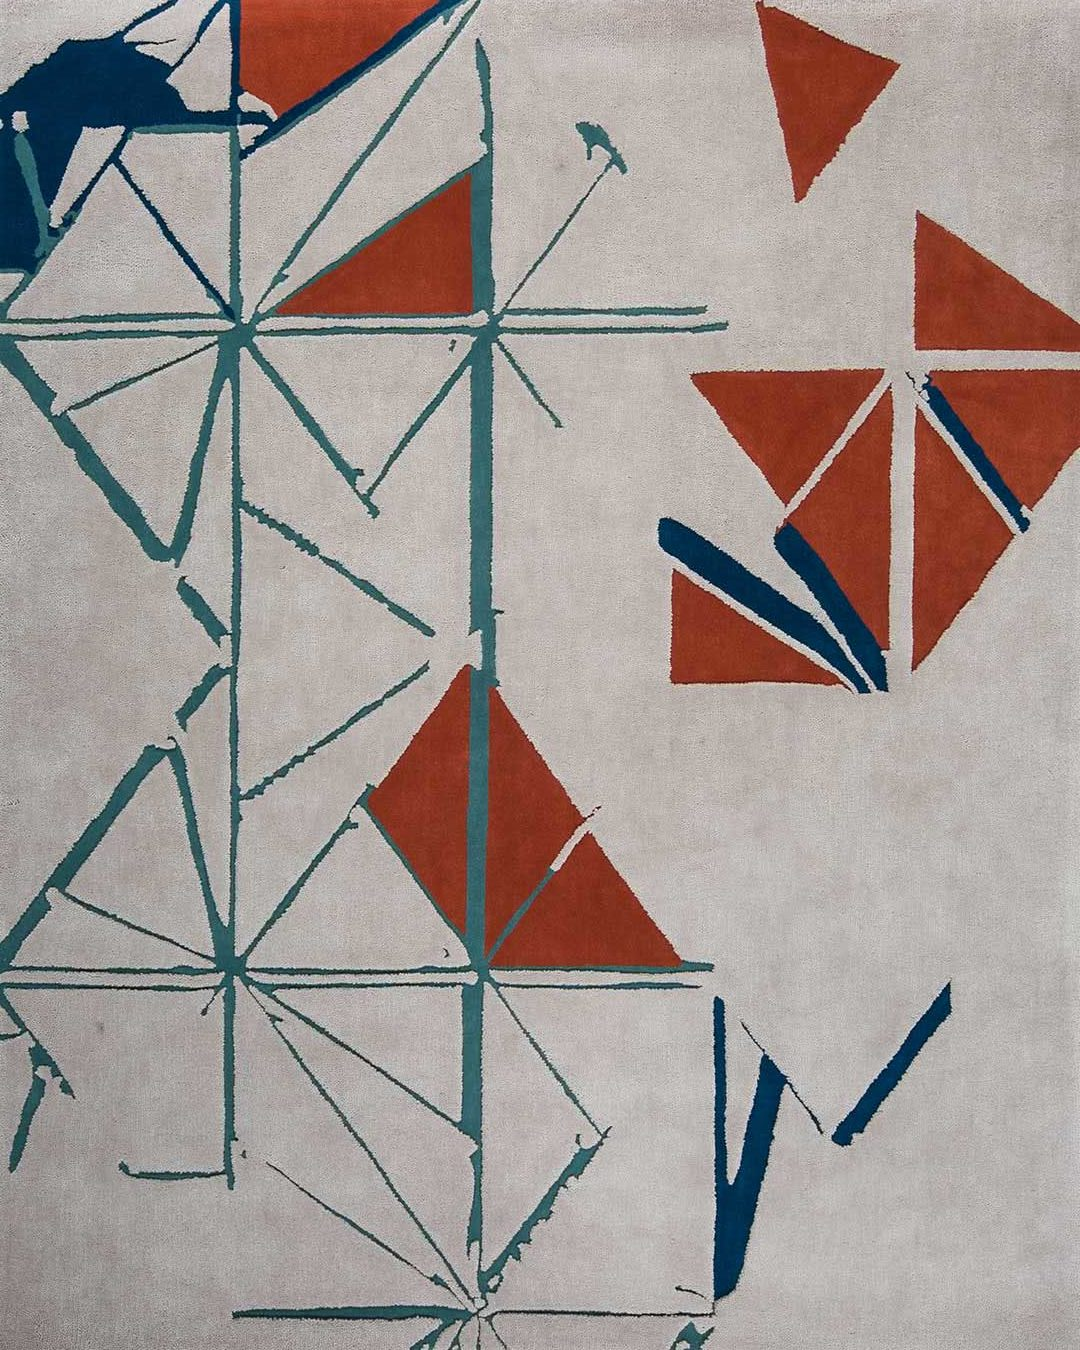 Detail view of our geometric and modern Despatch rug design in orange and teal